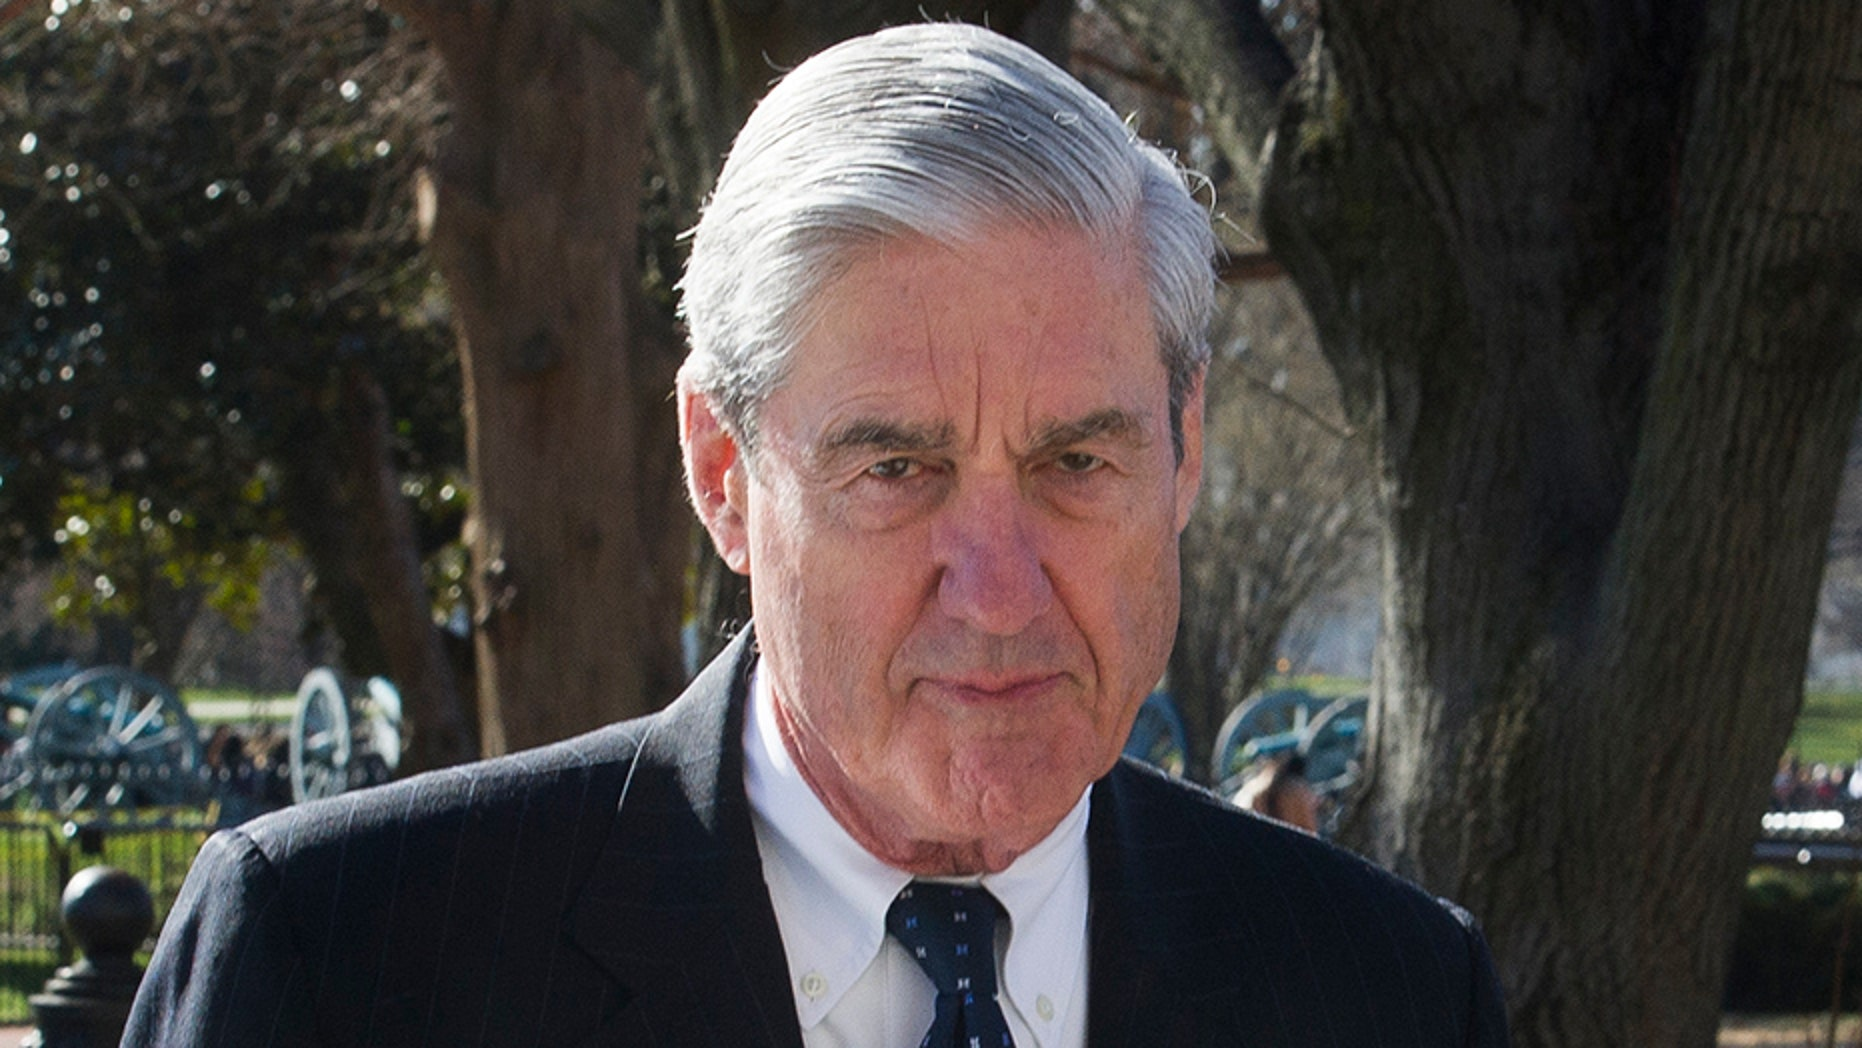 Fox News has dominated the ratings in its coverage of Special Counsel Robert Mueller's report and its findings.